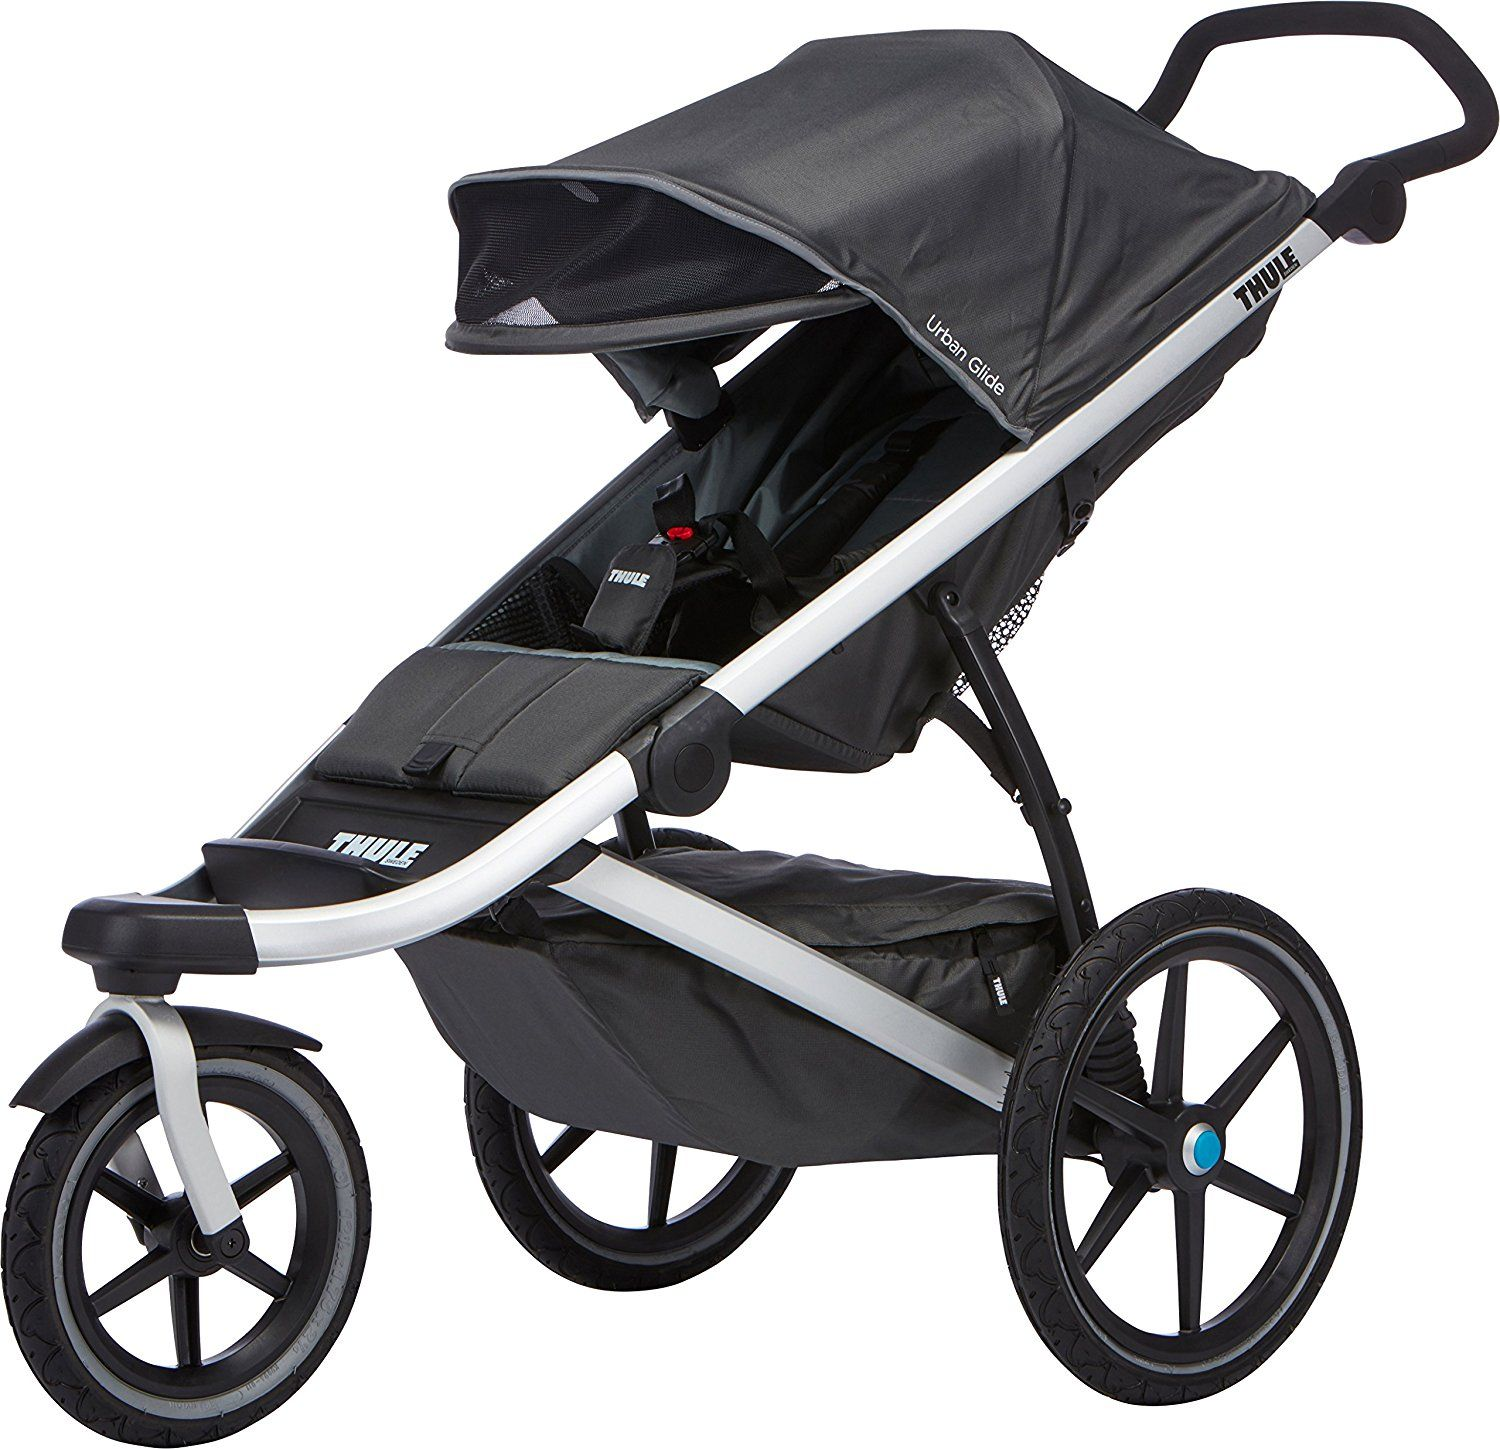 Jogging stroller much lighter than most joggers. Great